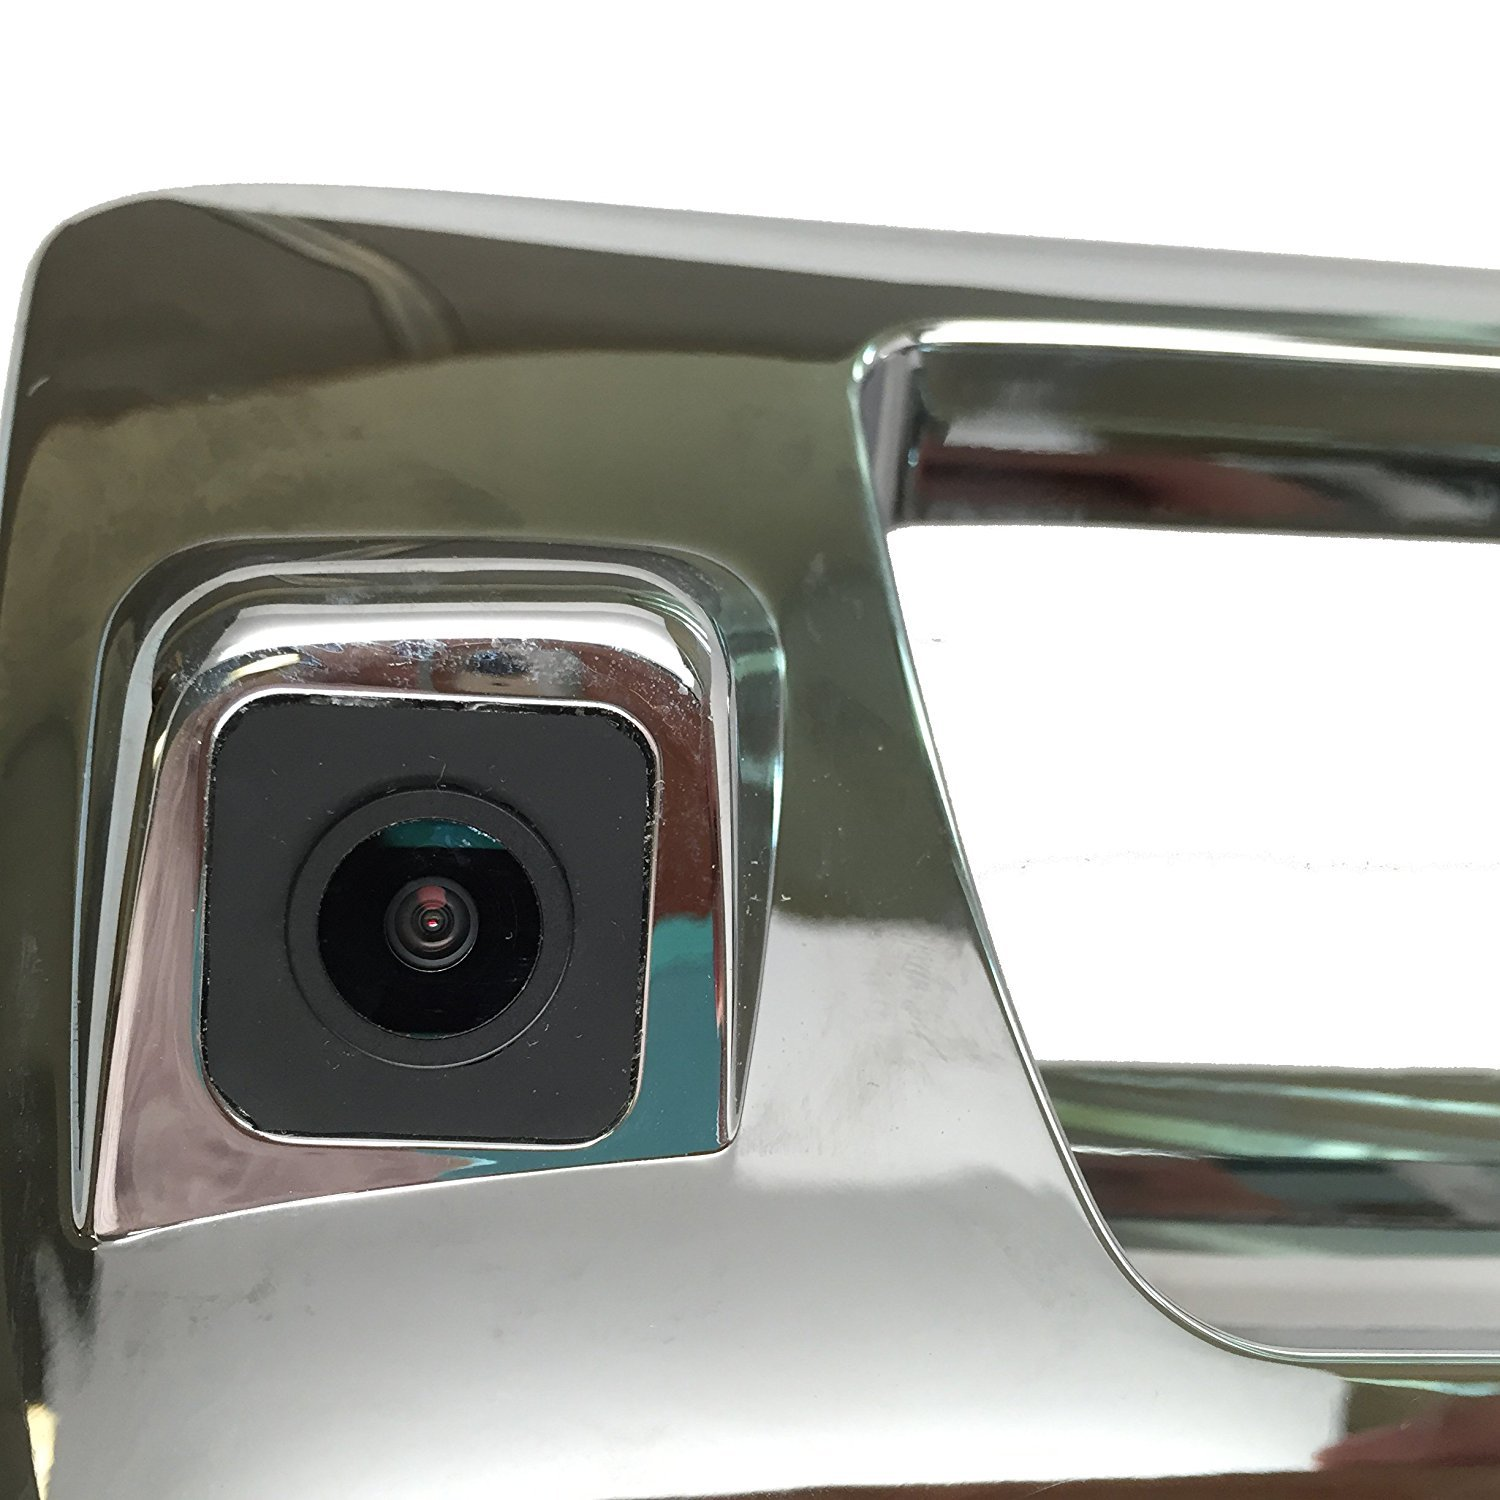 PYvideo Backup Camera for (2007-2013) Chevy Silverado / GMC Sierra for Universal Monitors (RCA) (Color: Chrome) by PYvideo (Image #2)